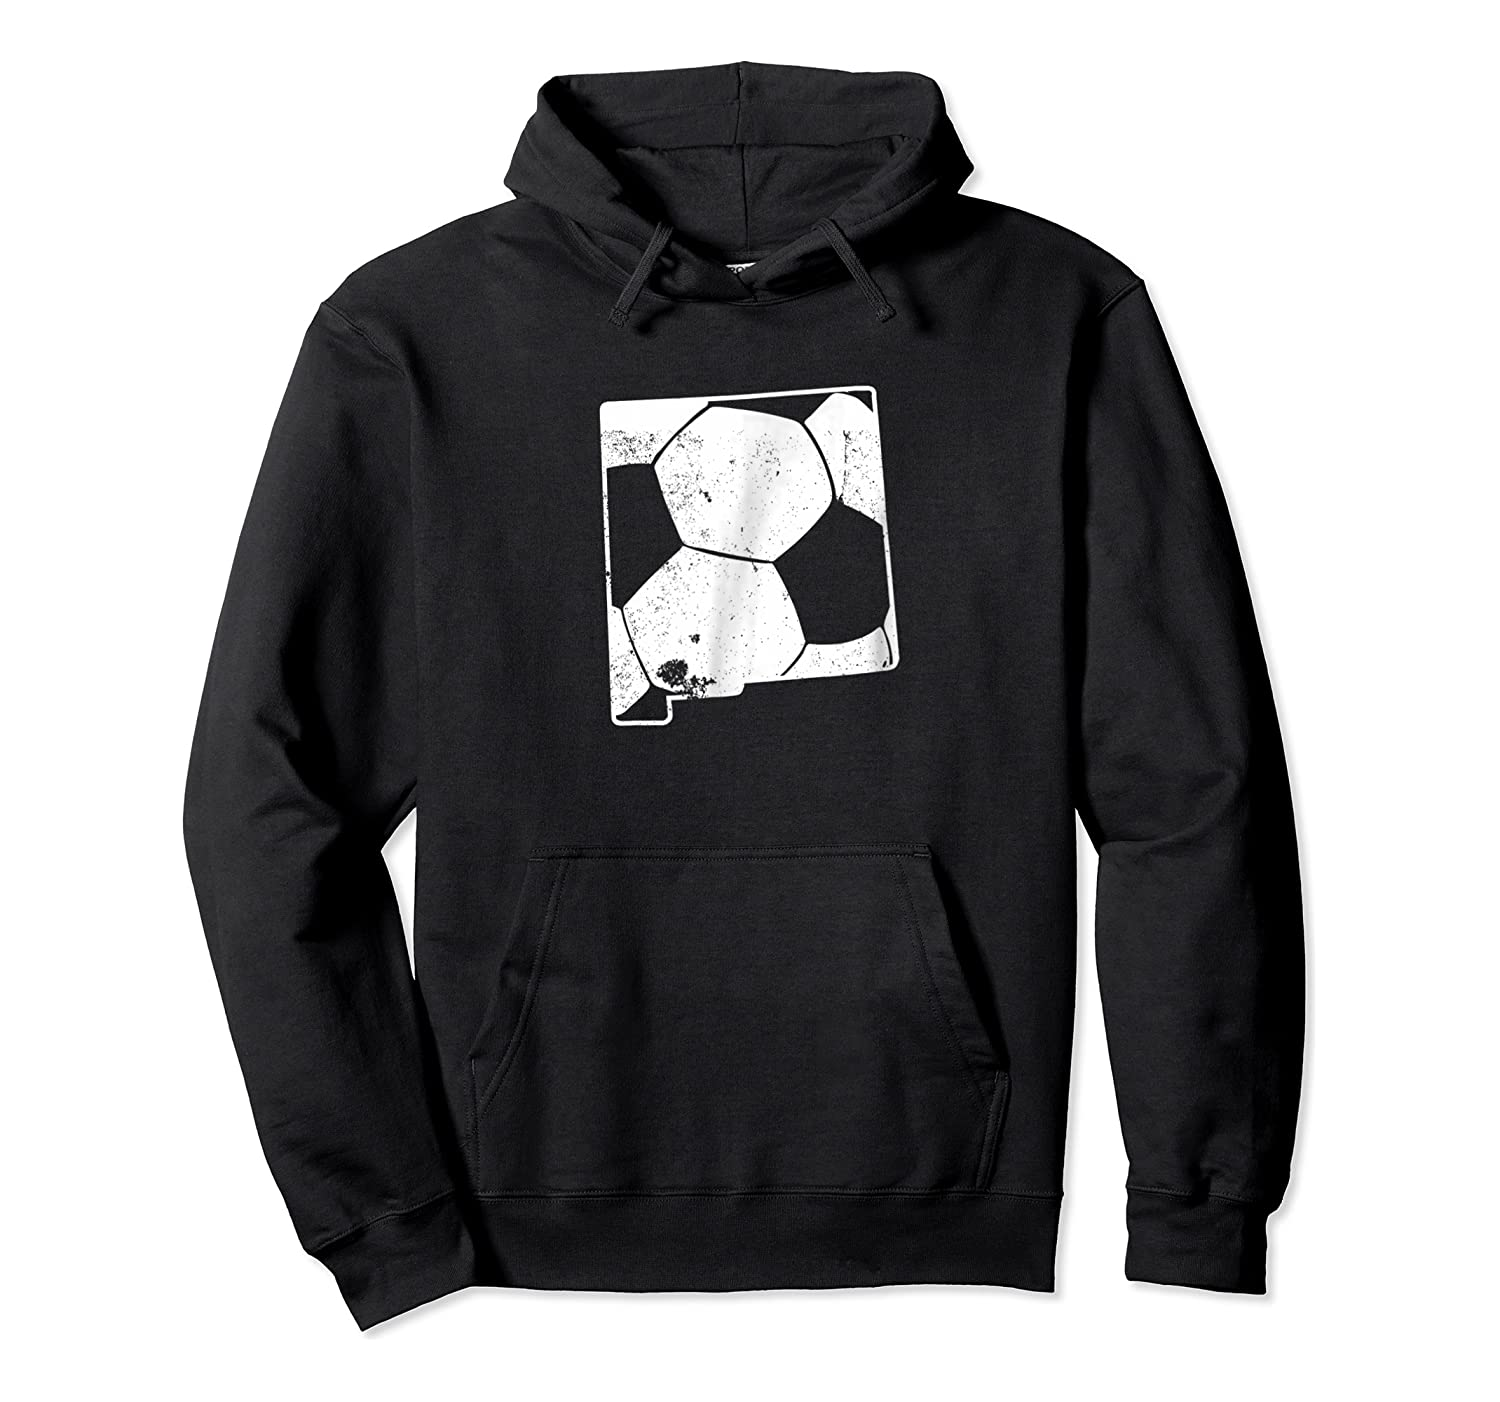 Soccer Gear New Mexico Soccer Shirts Unisex Pullover Hoodie